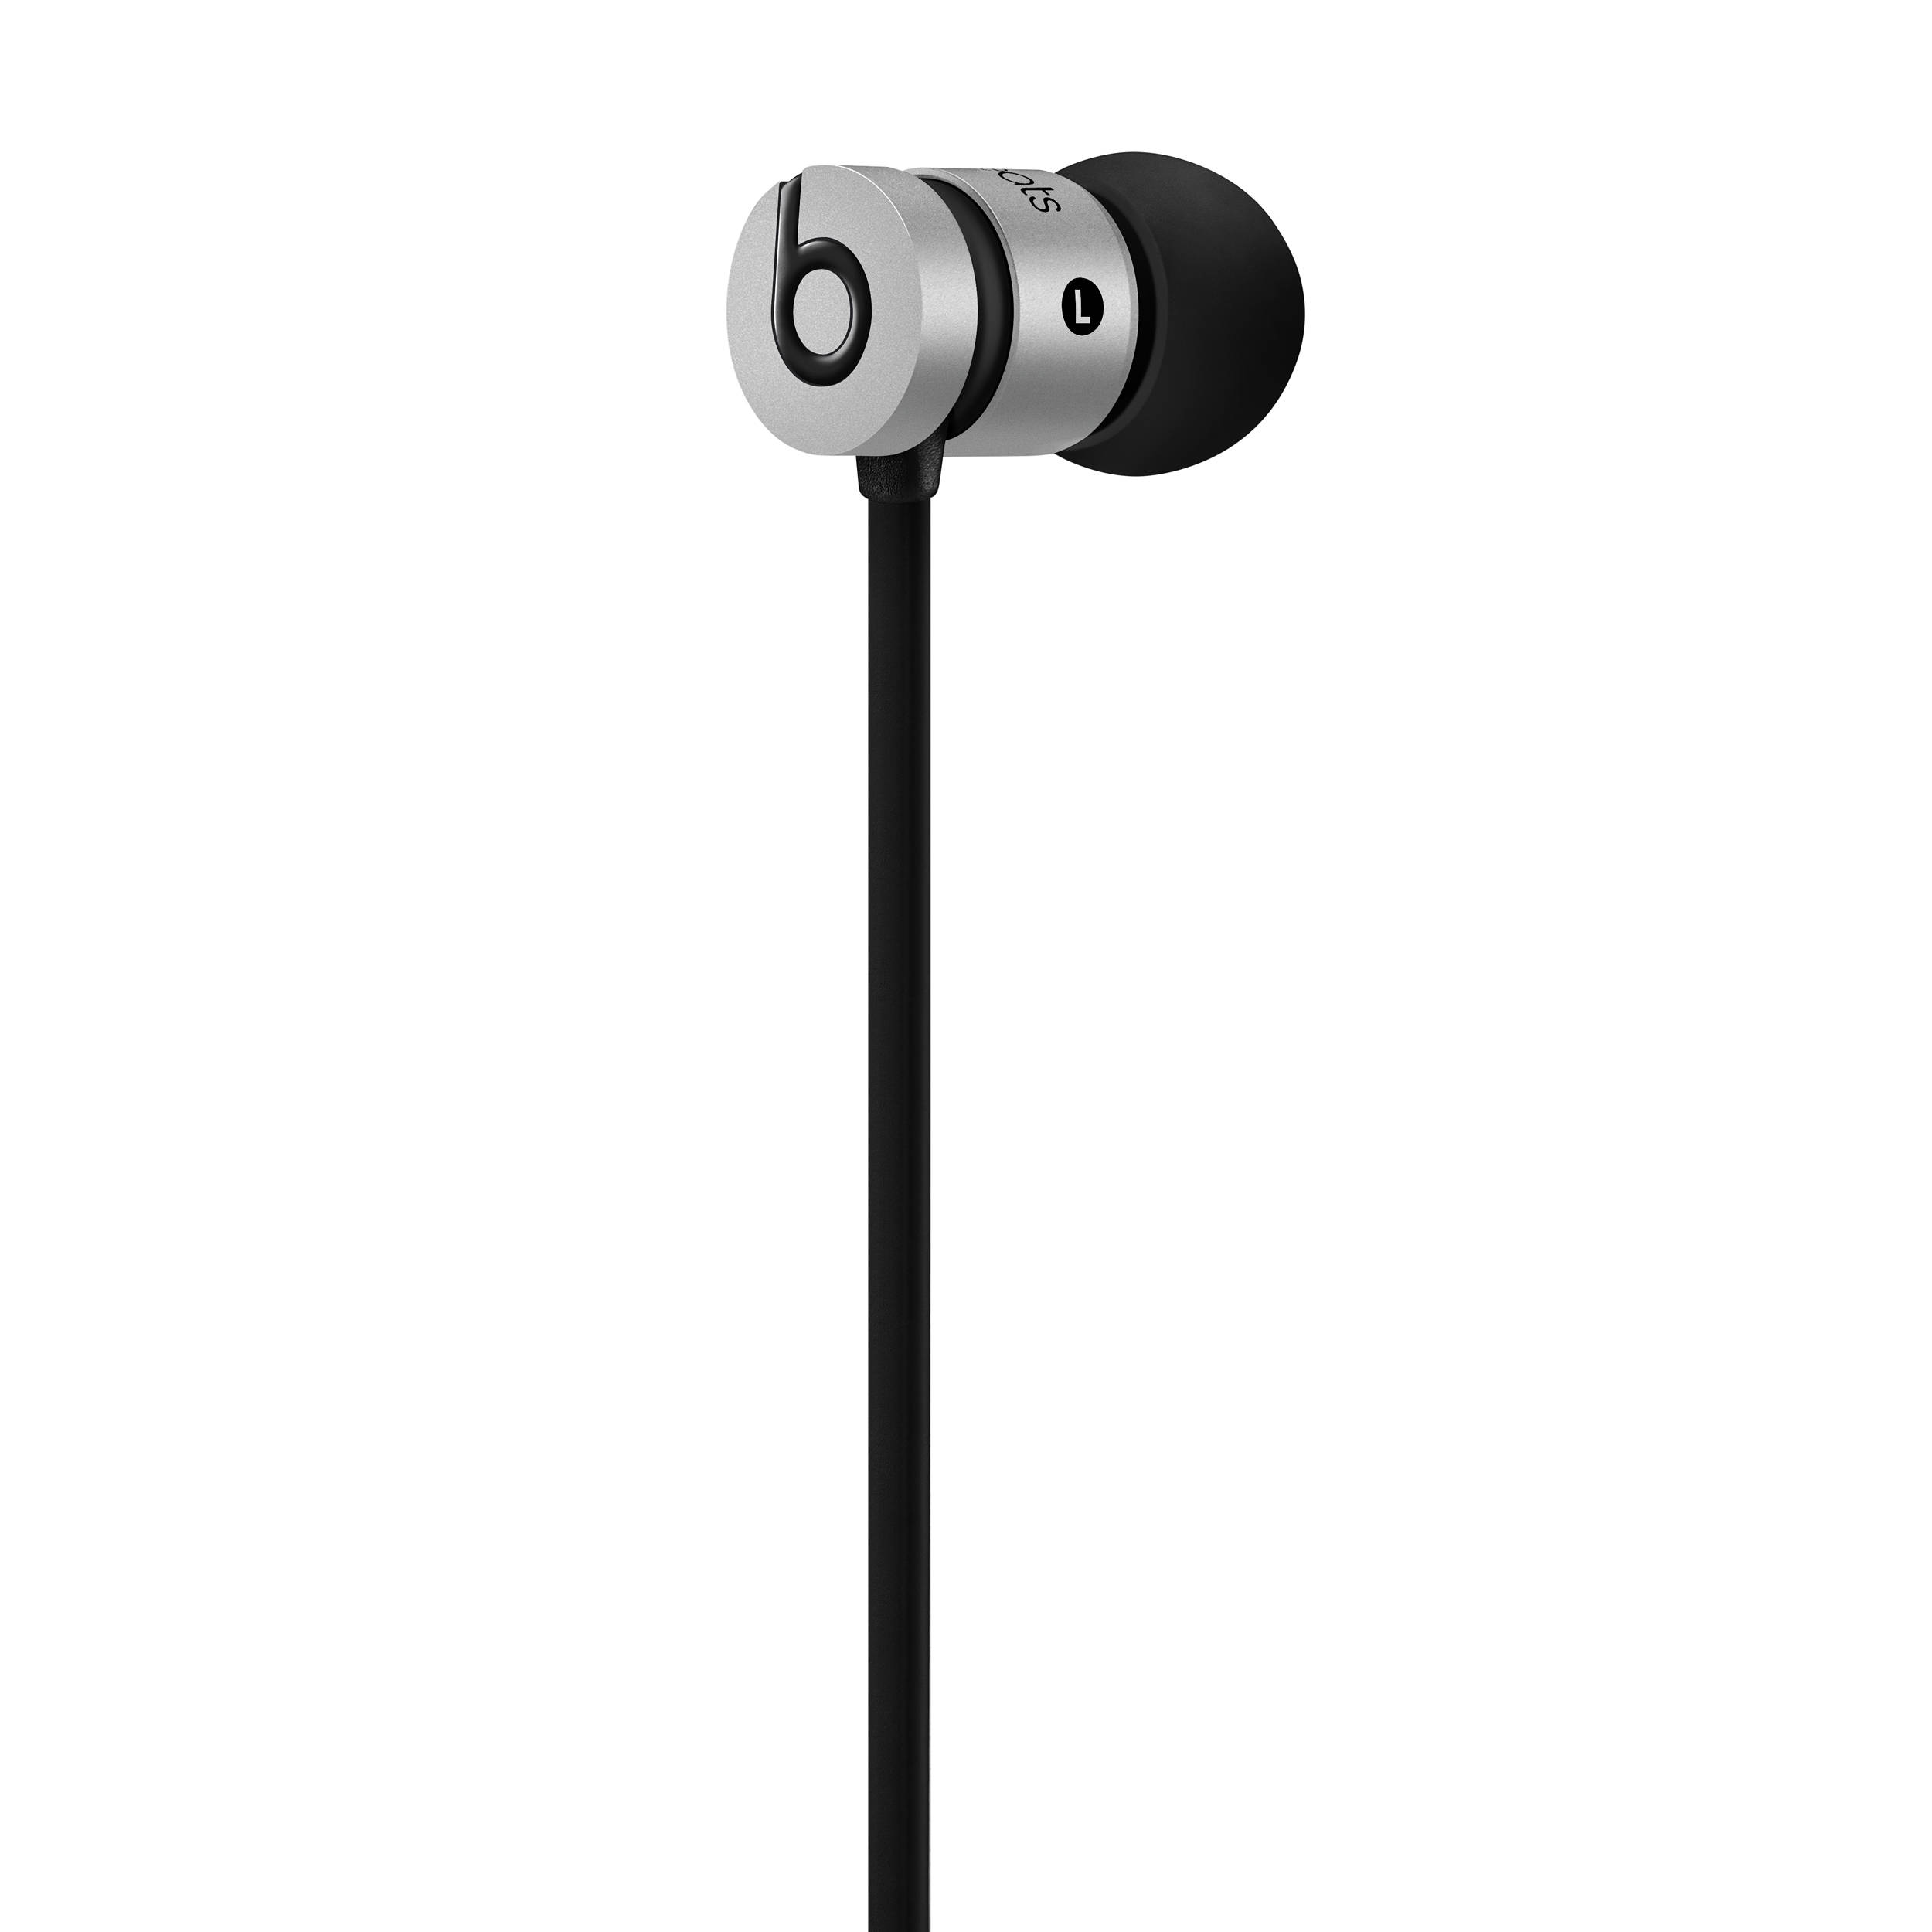 beats_by_dr_dre_mk9w2am_a_urbeats_in_ear_headphones_space_1118173 by dr dre urbeats in ear headphones (space gray)  at love-stories.co